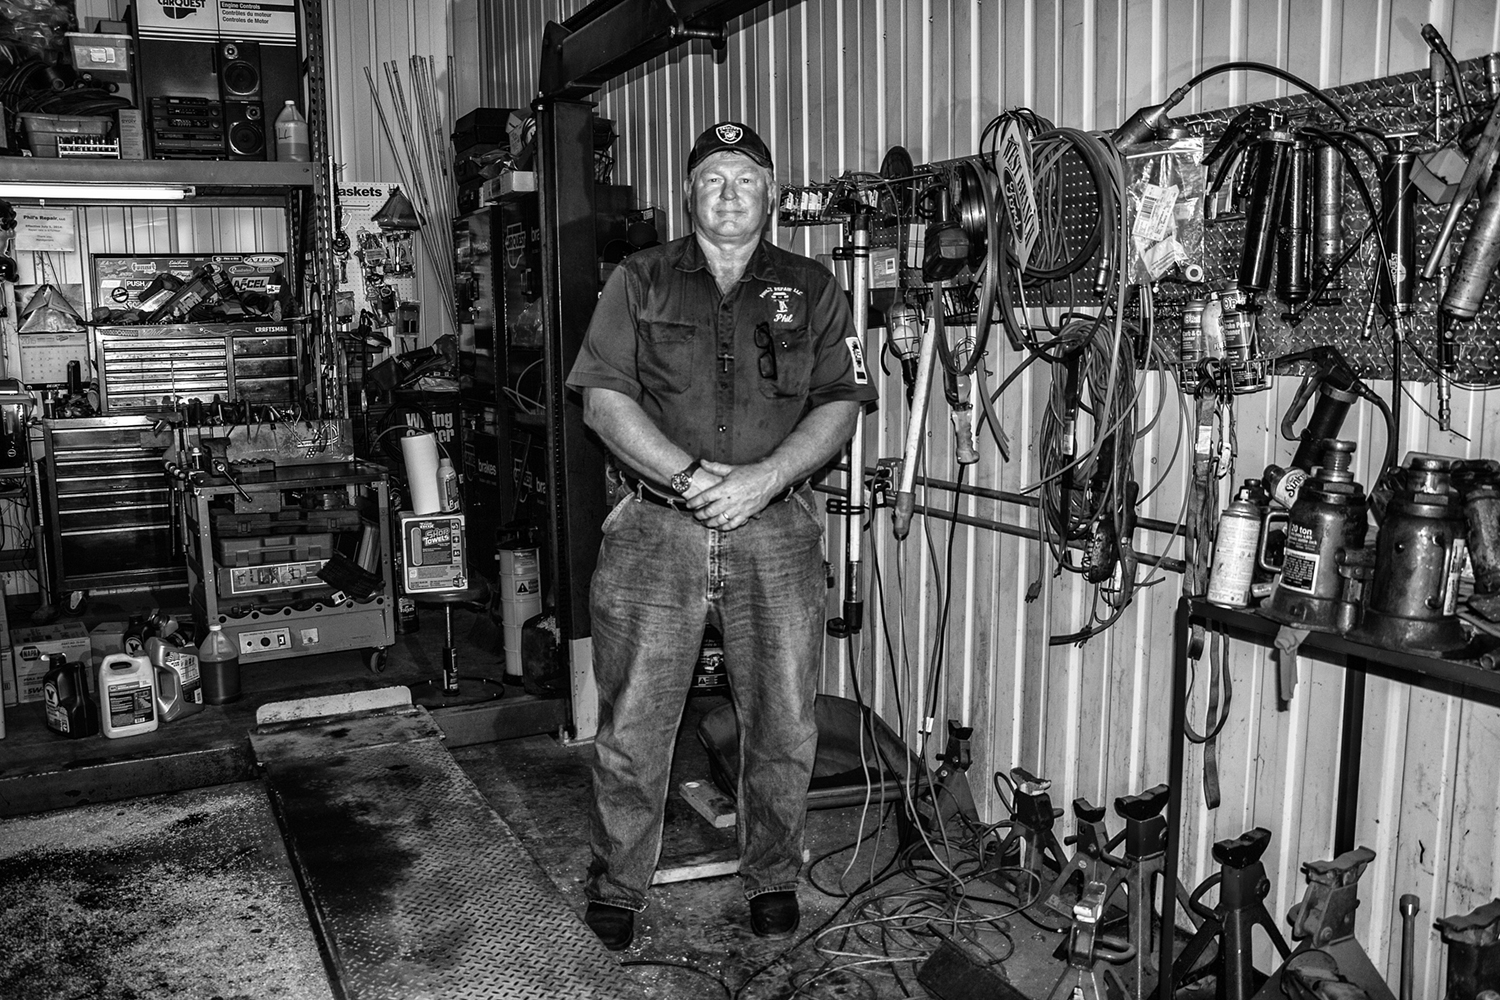 Johnson County supervisor candidate Phil Hemingway stands for a portrait in his mechanic shop on Wednesday. The Johnson County Republican Party has nominated Hemingway to run for county supervisor.